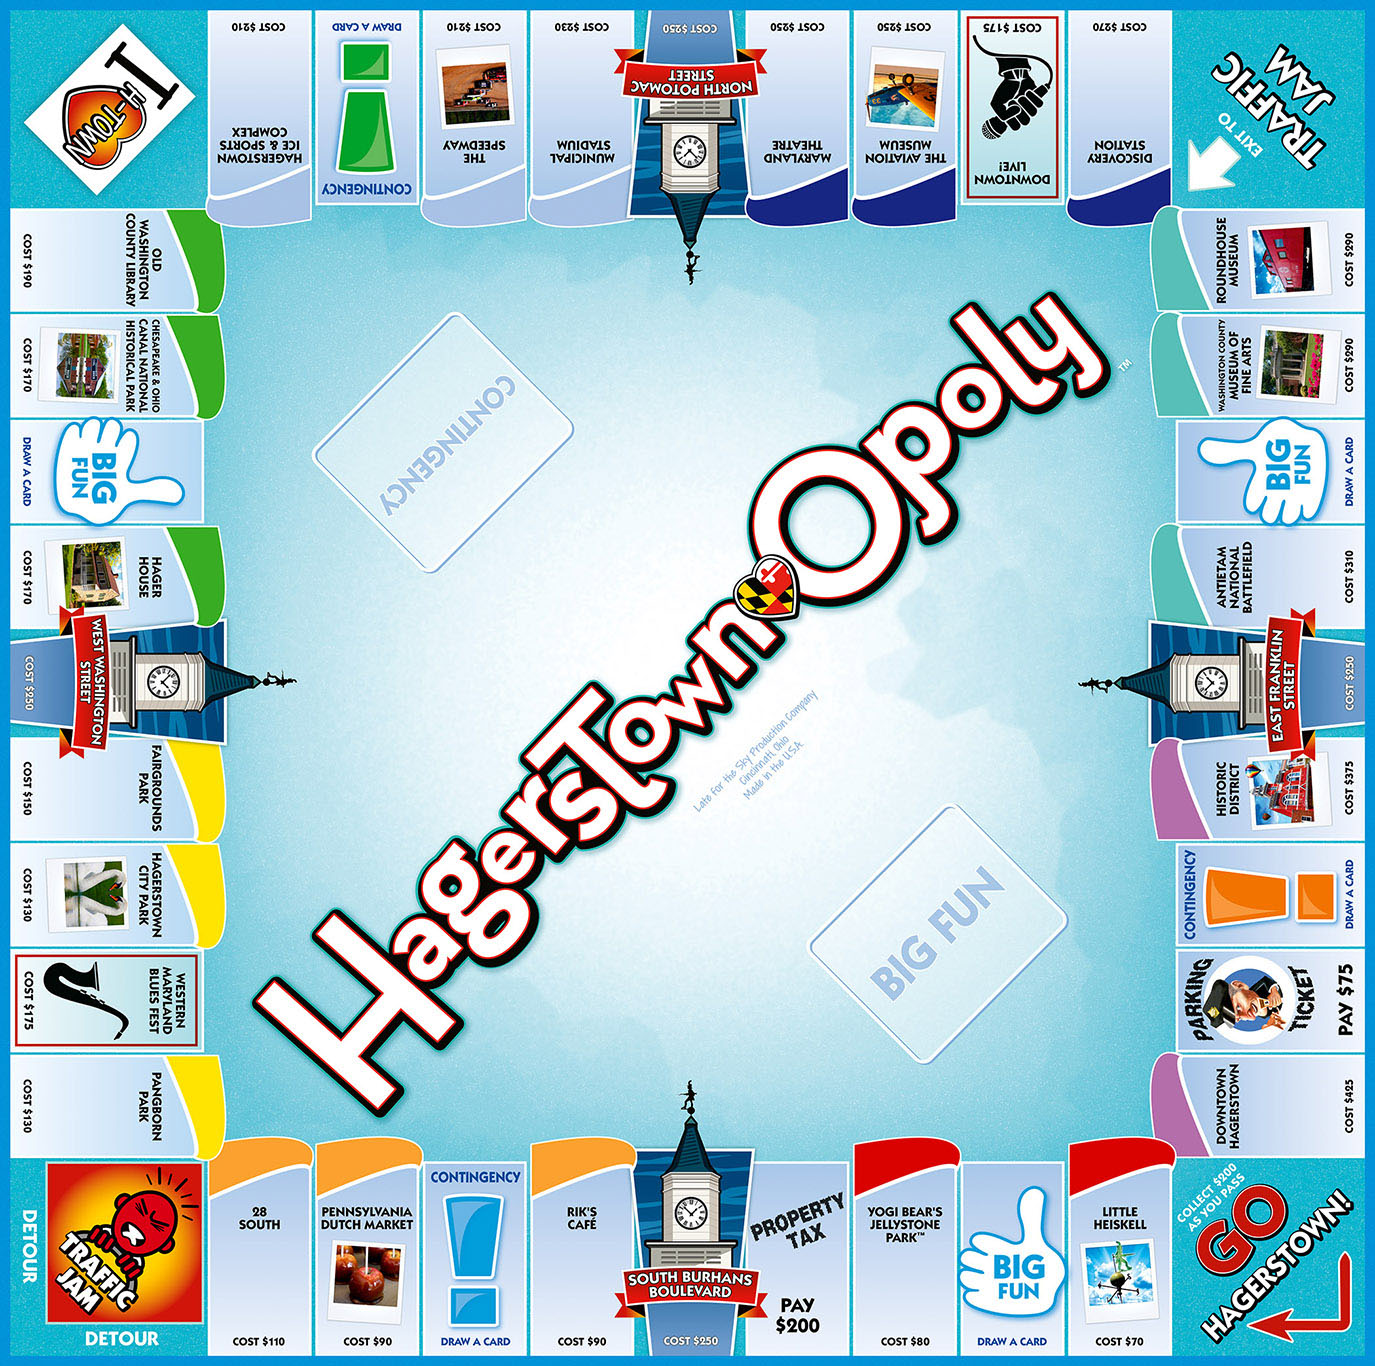 HAGERSTOWN-OPOLY Board Game